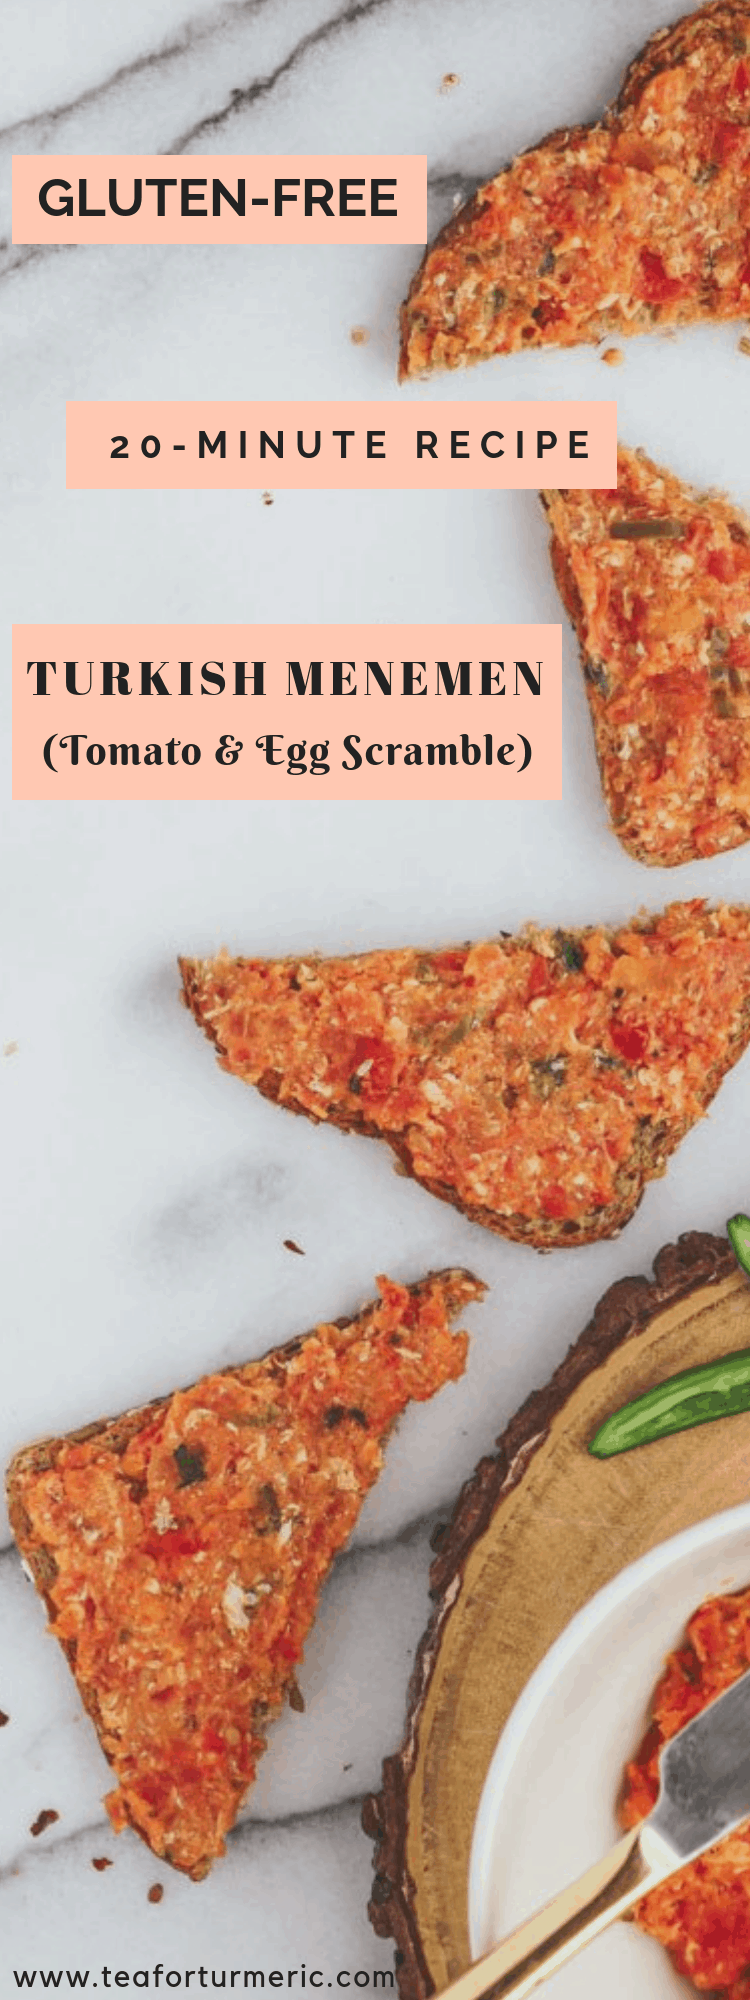 Menemen is a nutritious Turkish breakfast that is easy to prepare with simple ingredients like peppers, tomatoes, and eggs. Yet the combination of flavors and style of cooking gives it an exotic taste.